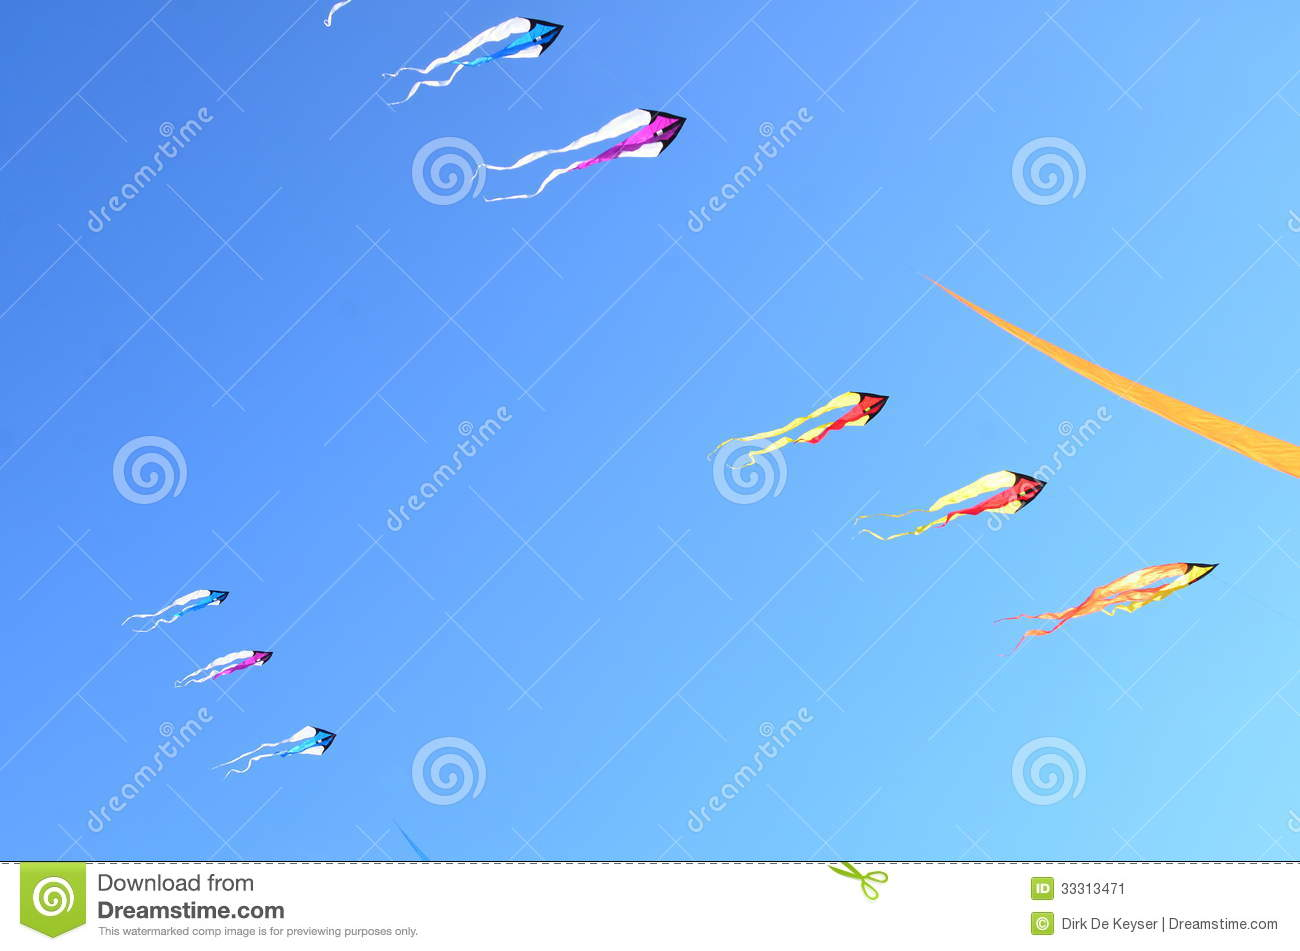 Flying kites in a blue sky